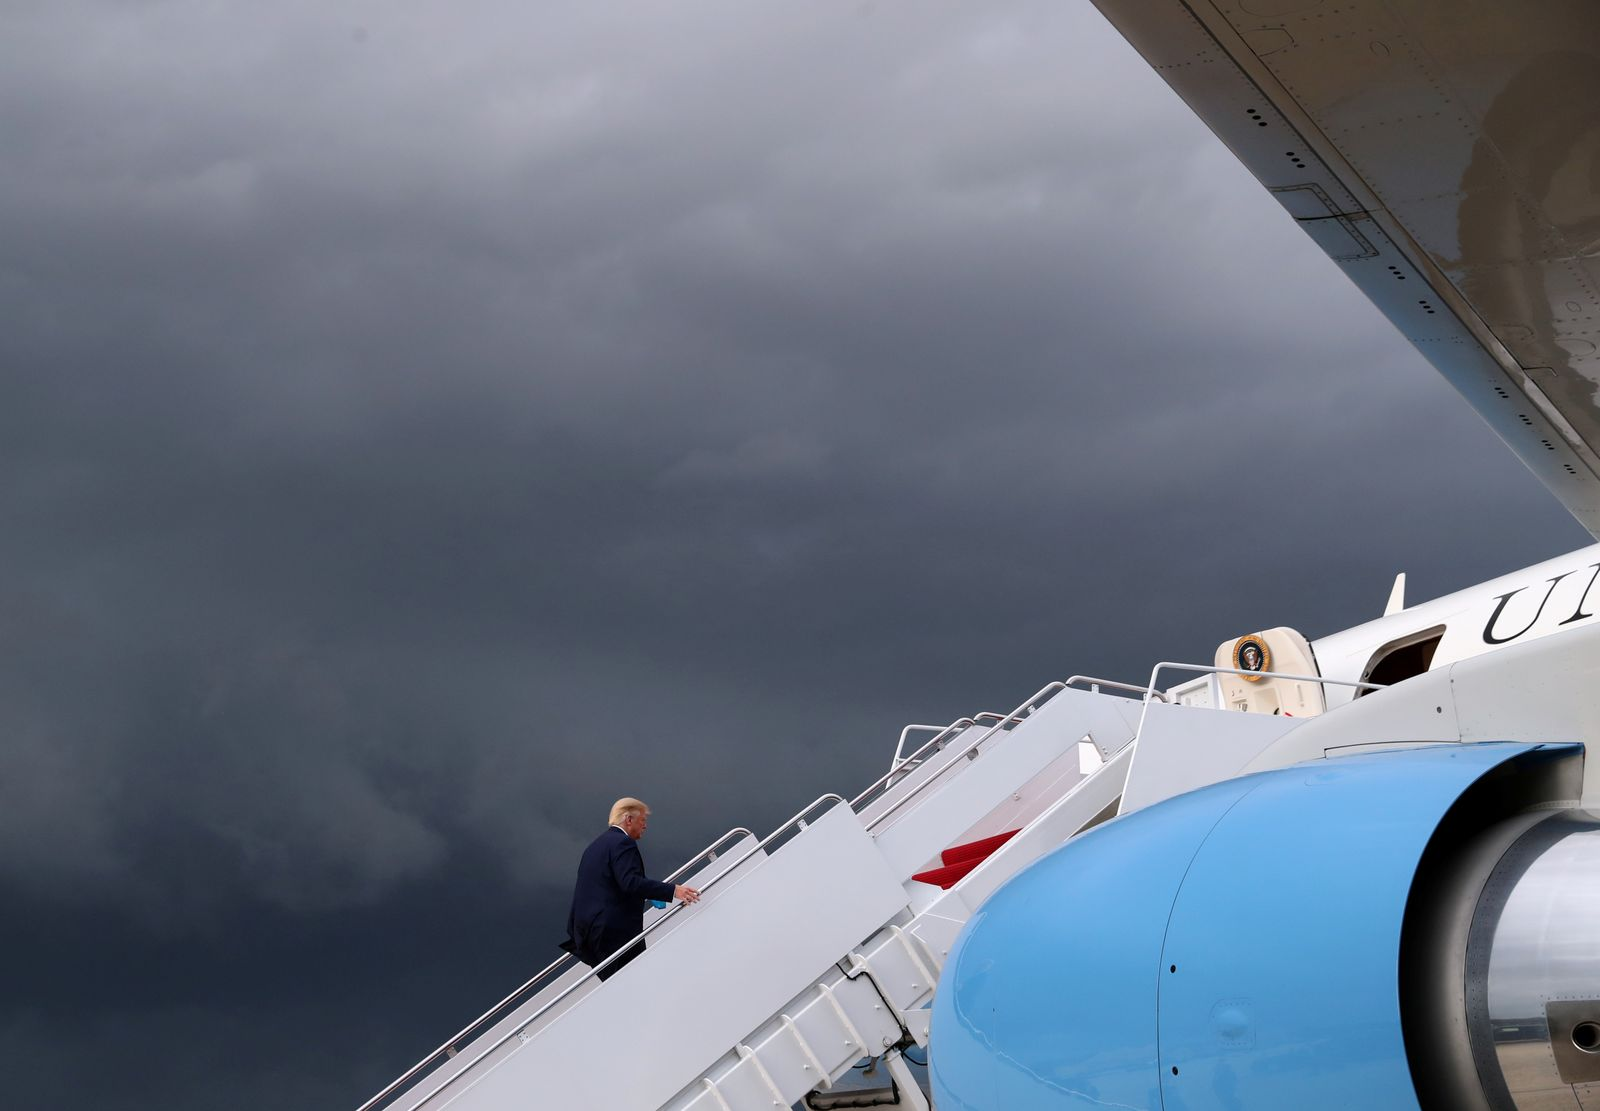 U.S. President Donald Trump boards Air Force One as he departs Washington on campaign travel to Latrobe, Pennsylvania, at Joint Base Andrews in Maryland